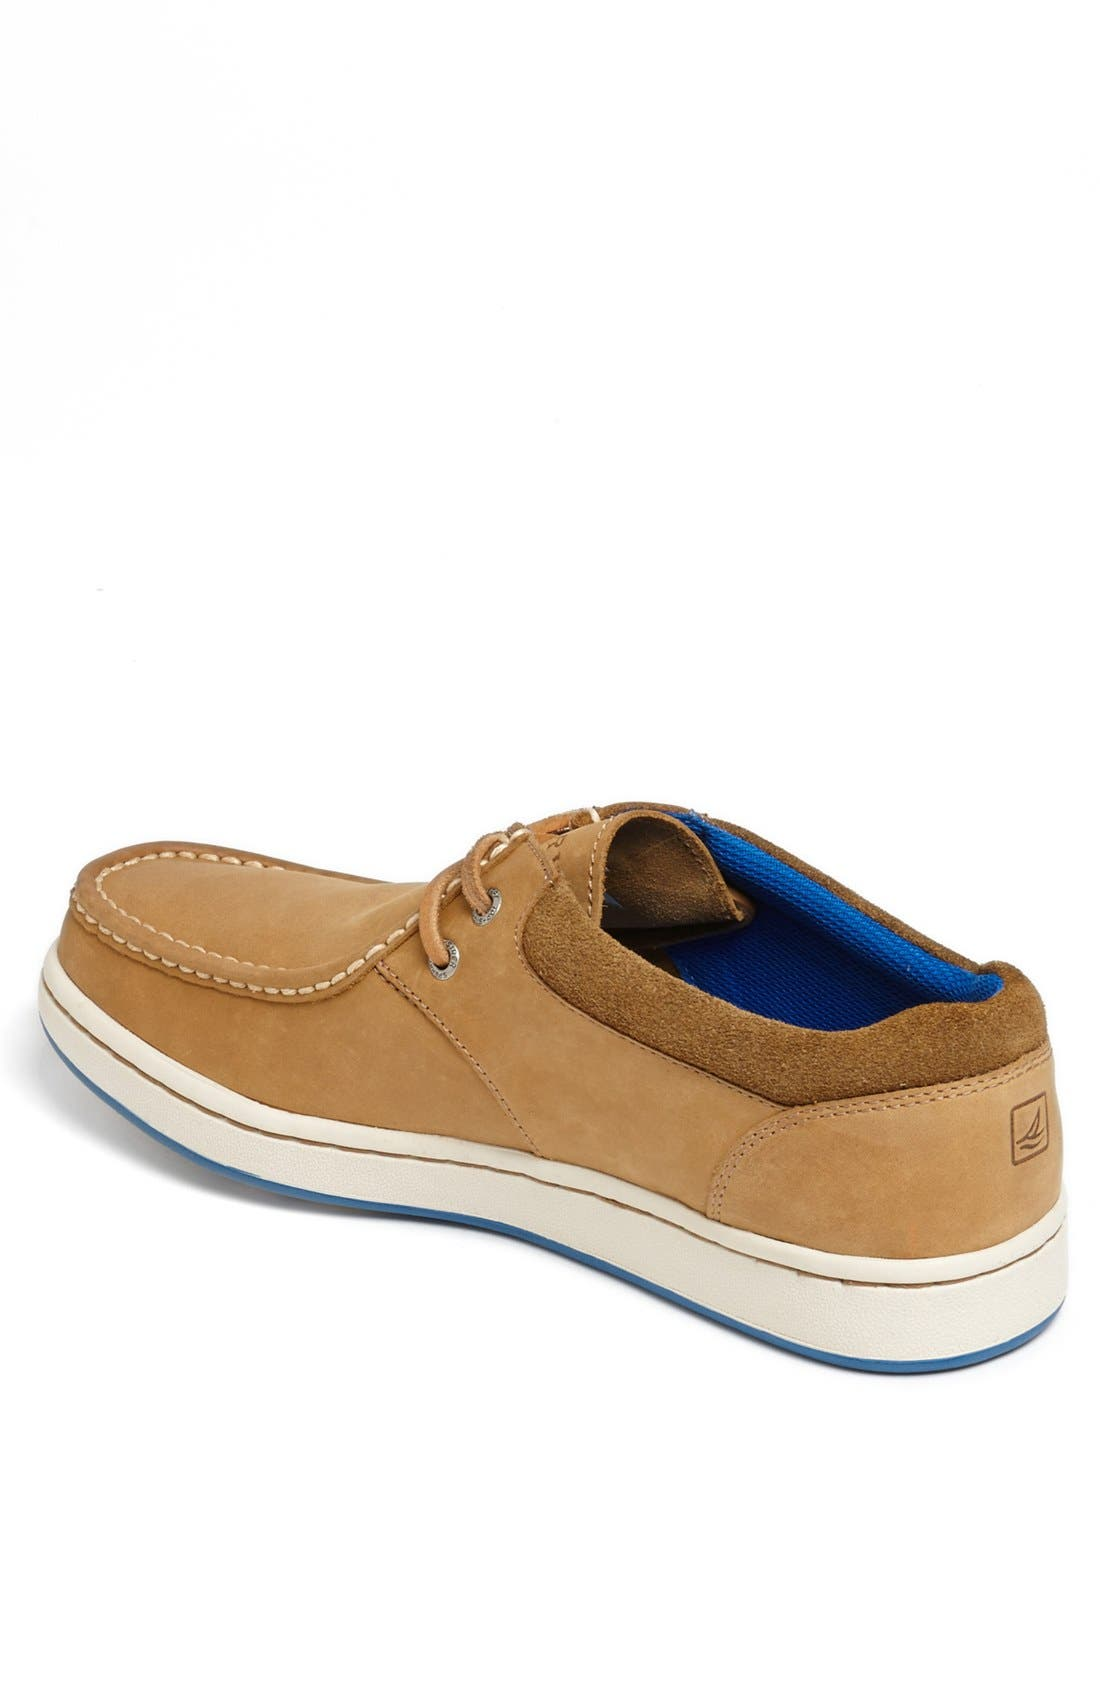 Alternate Image 2  - Sperry Top-Sider® 'Sperry Cup' Chukka Boot